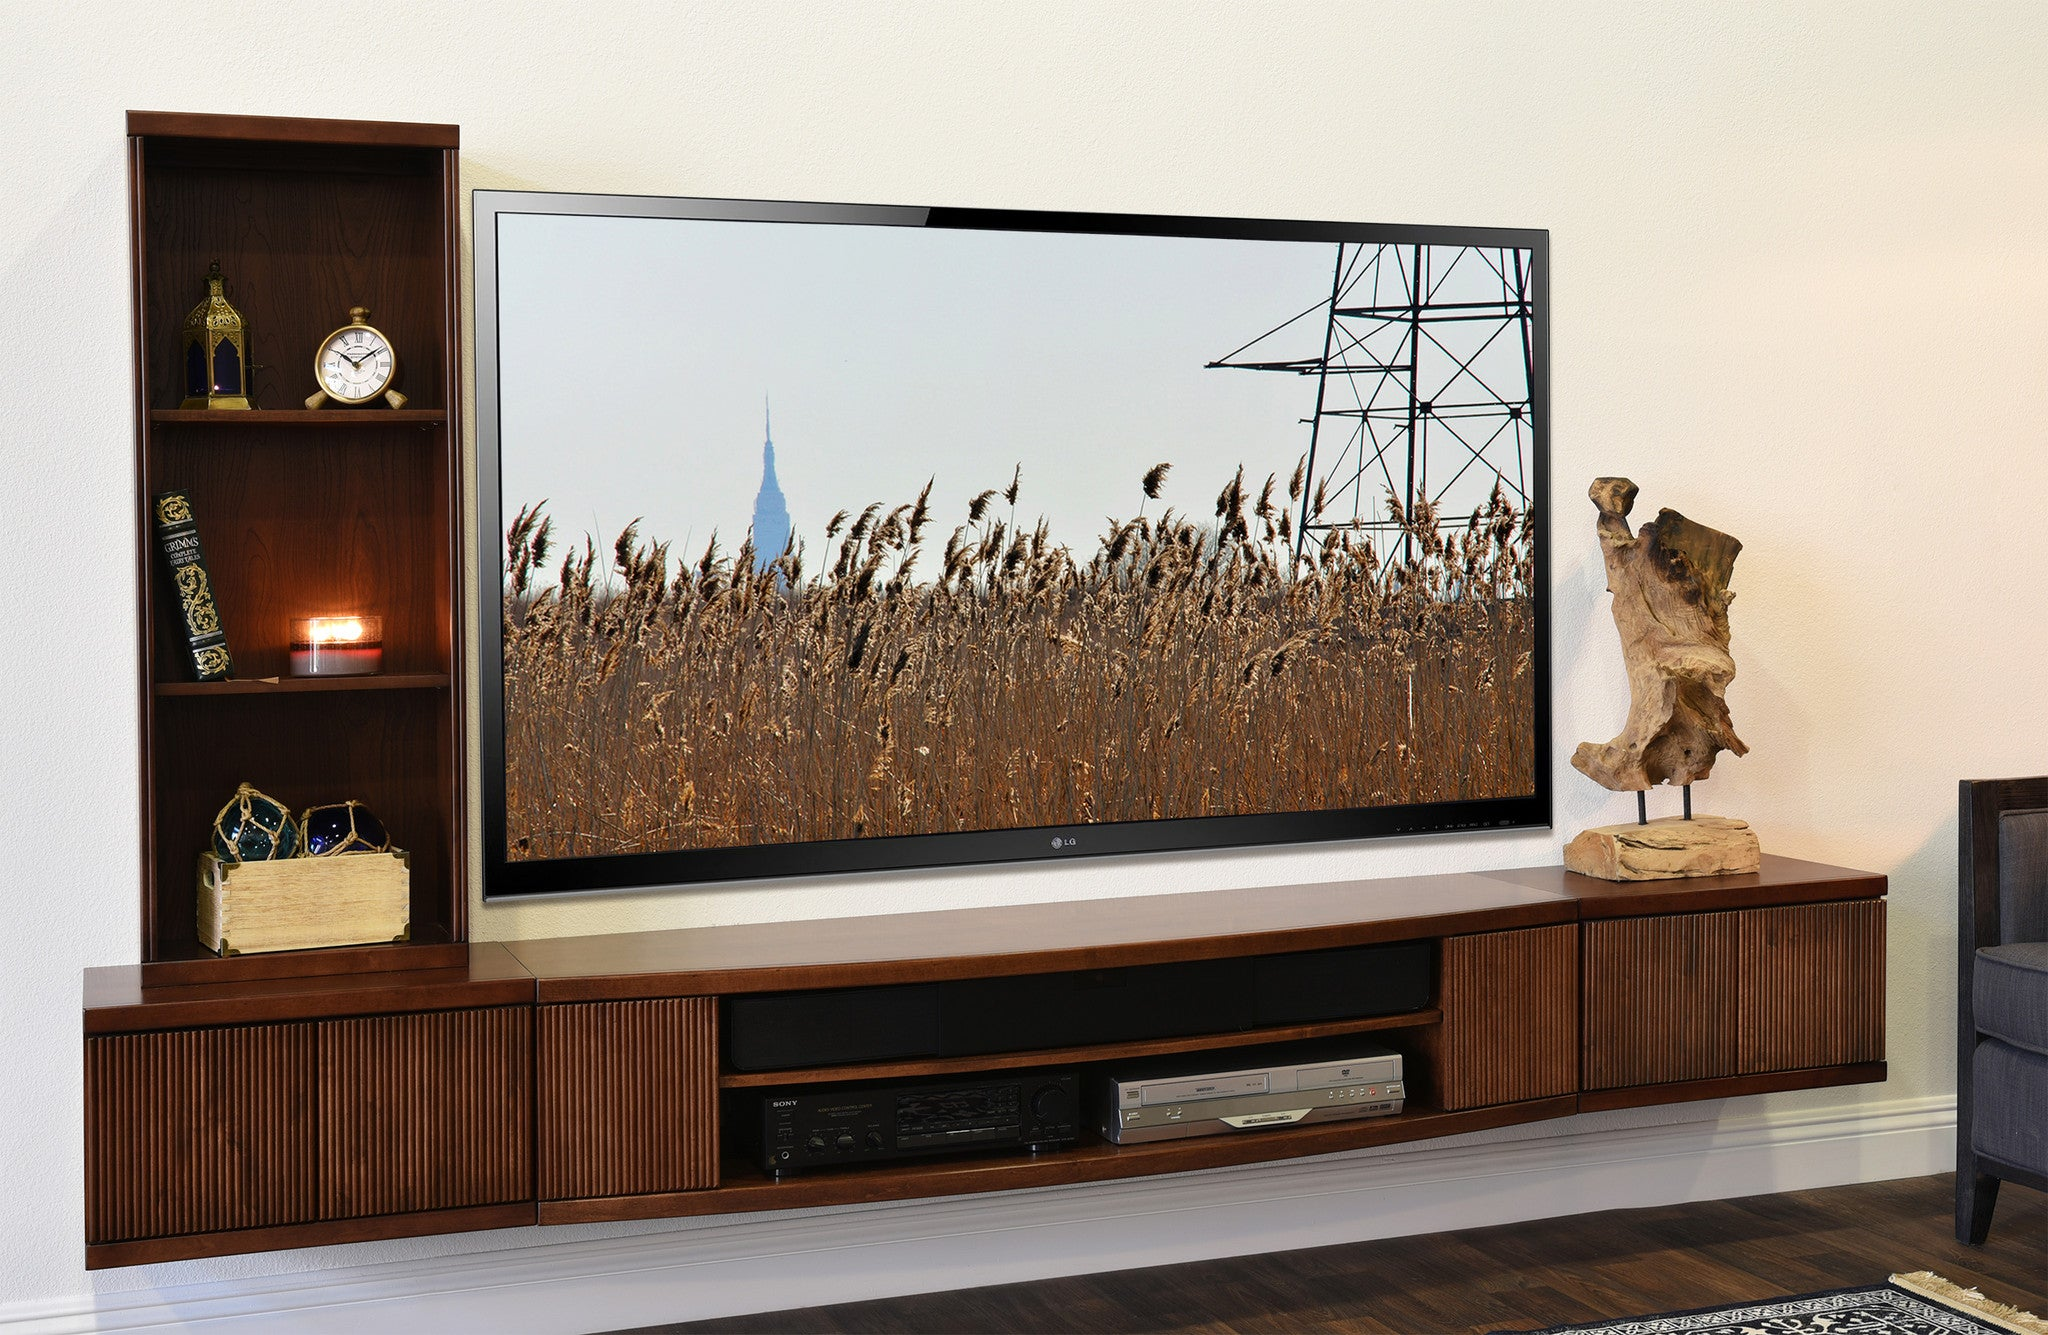 Finest Floating TV Stand Entertainment Center Console - Curve Mocha - 3  OB02